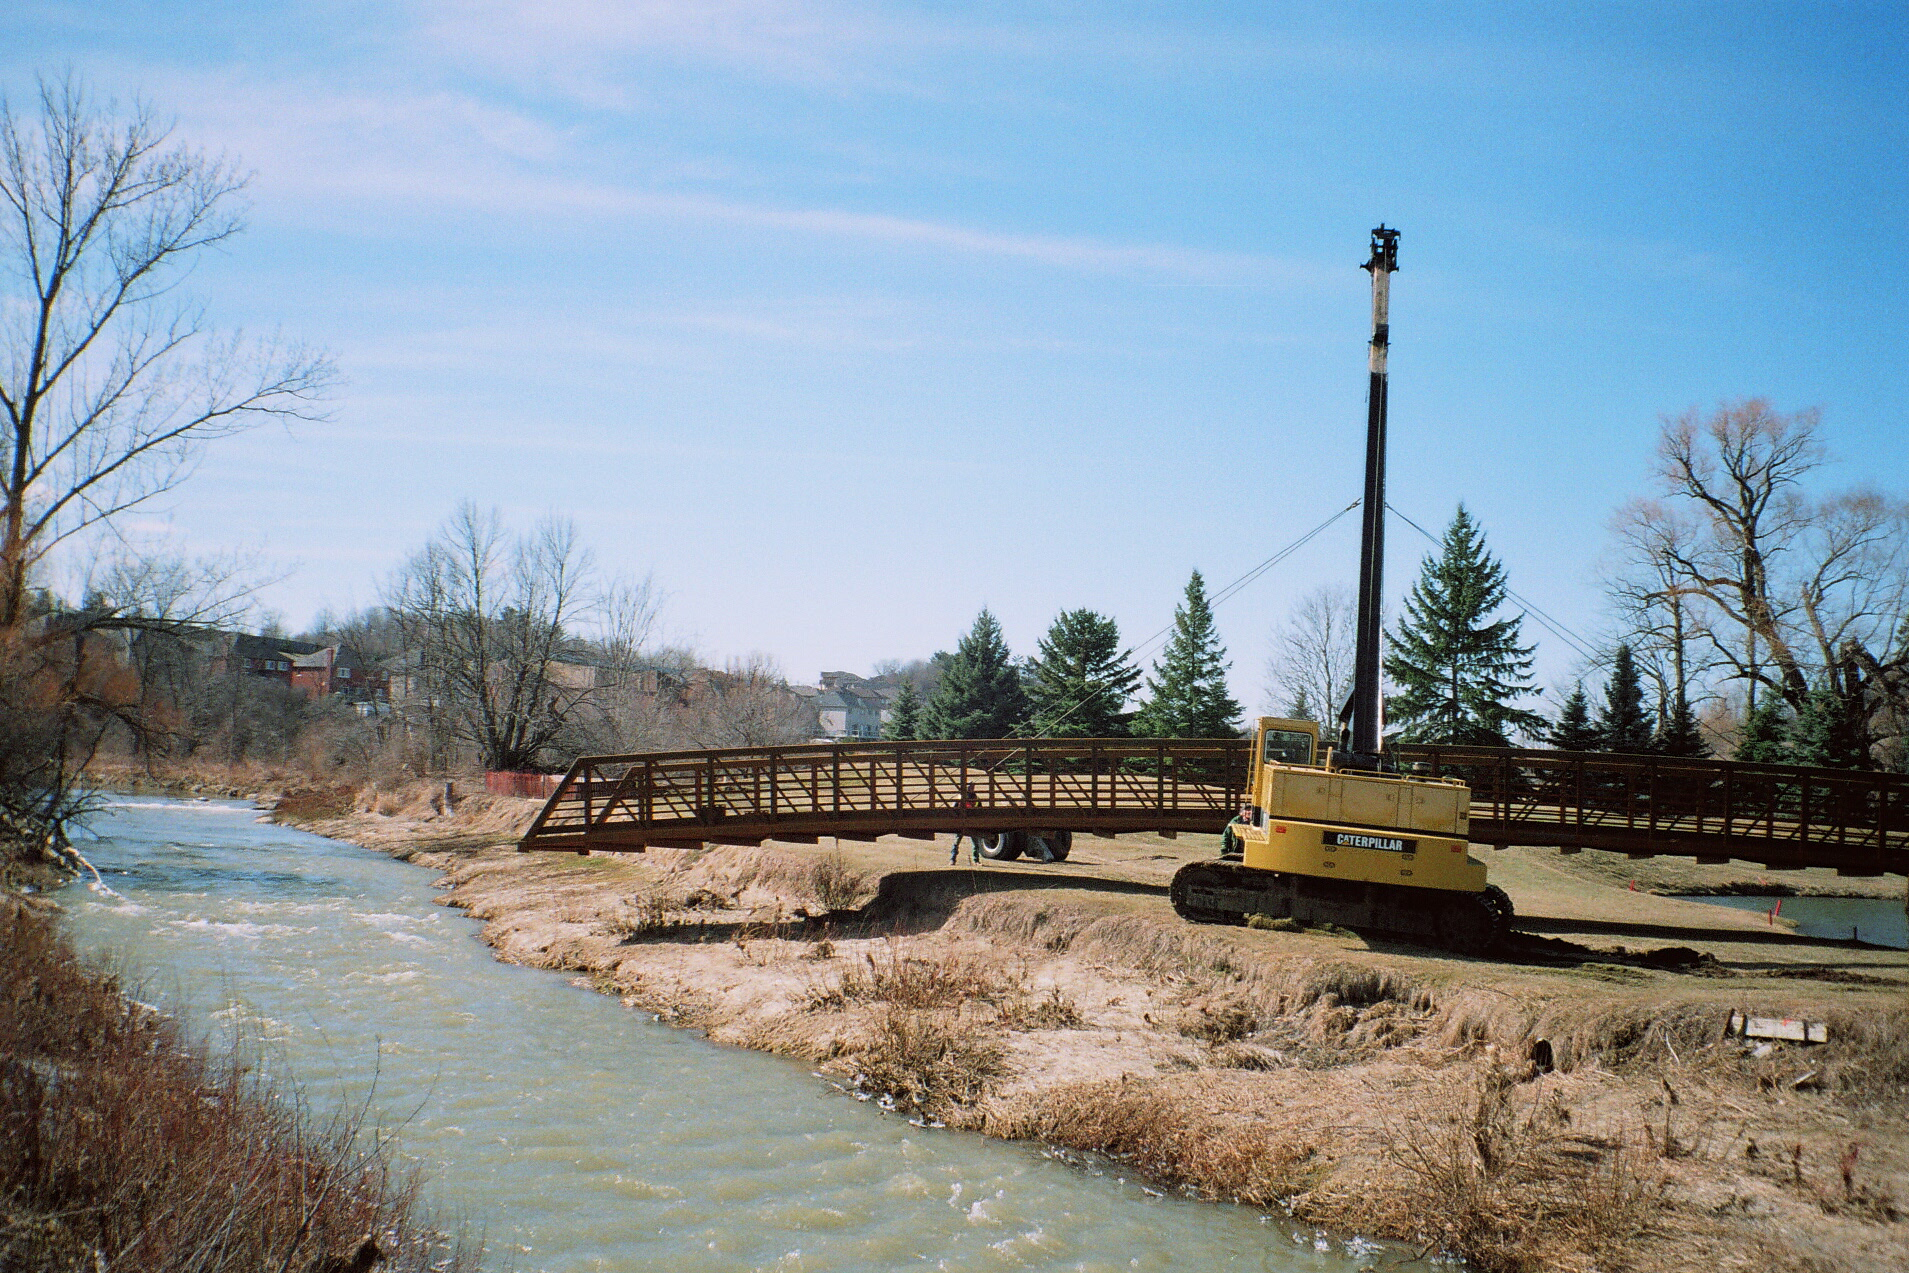 Bridge Install over Humber River